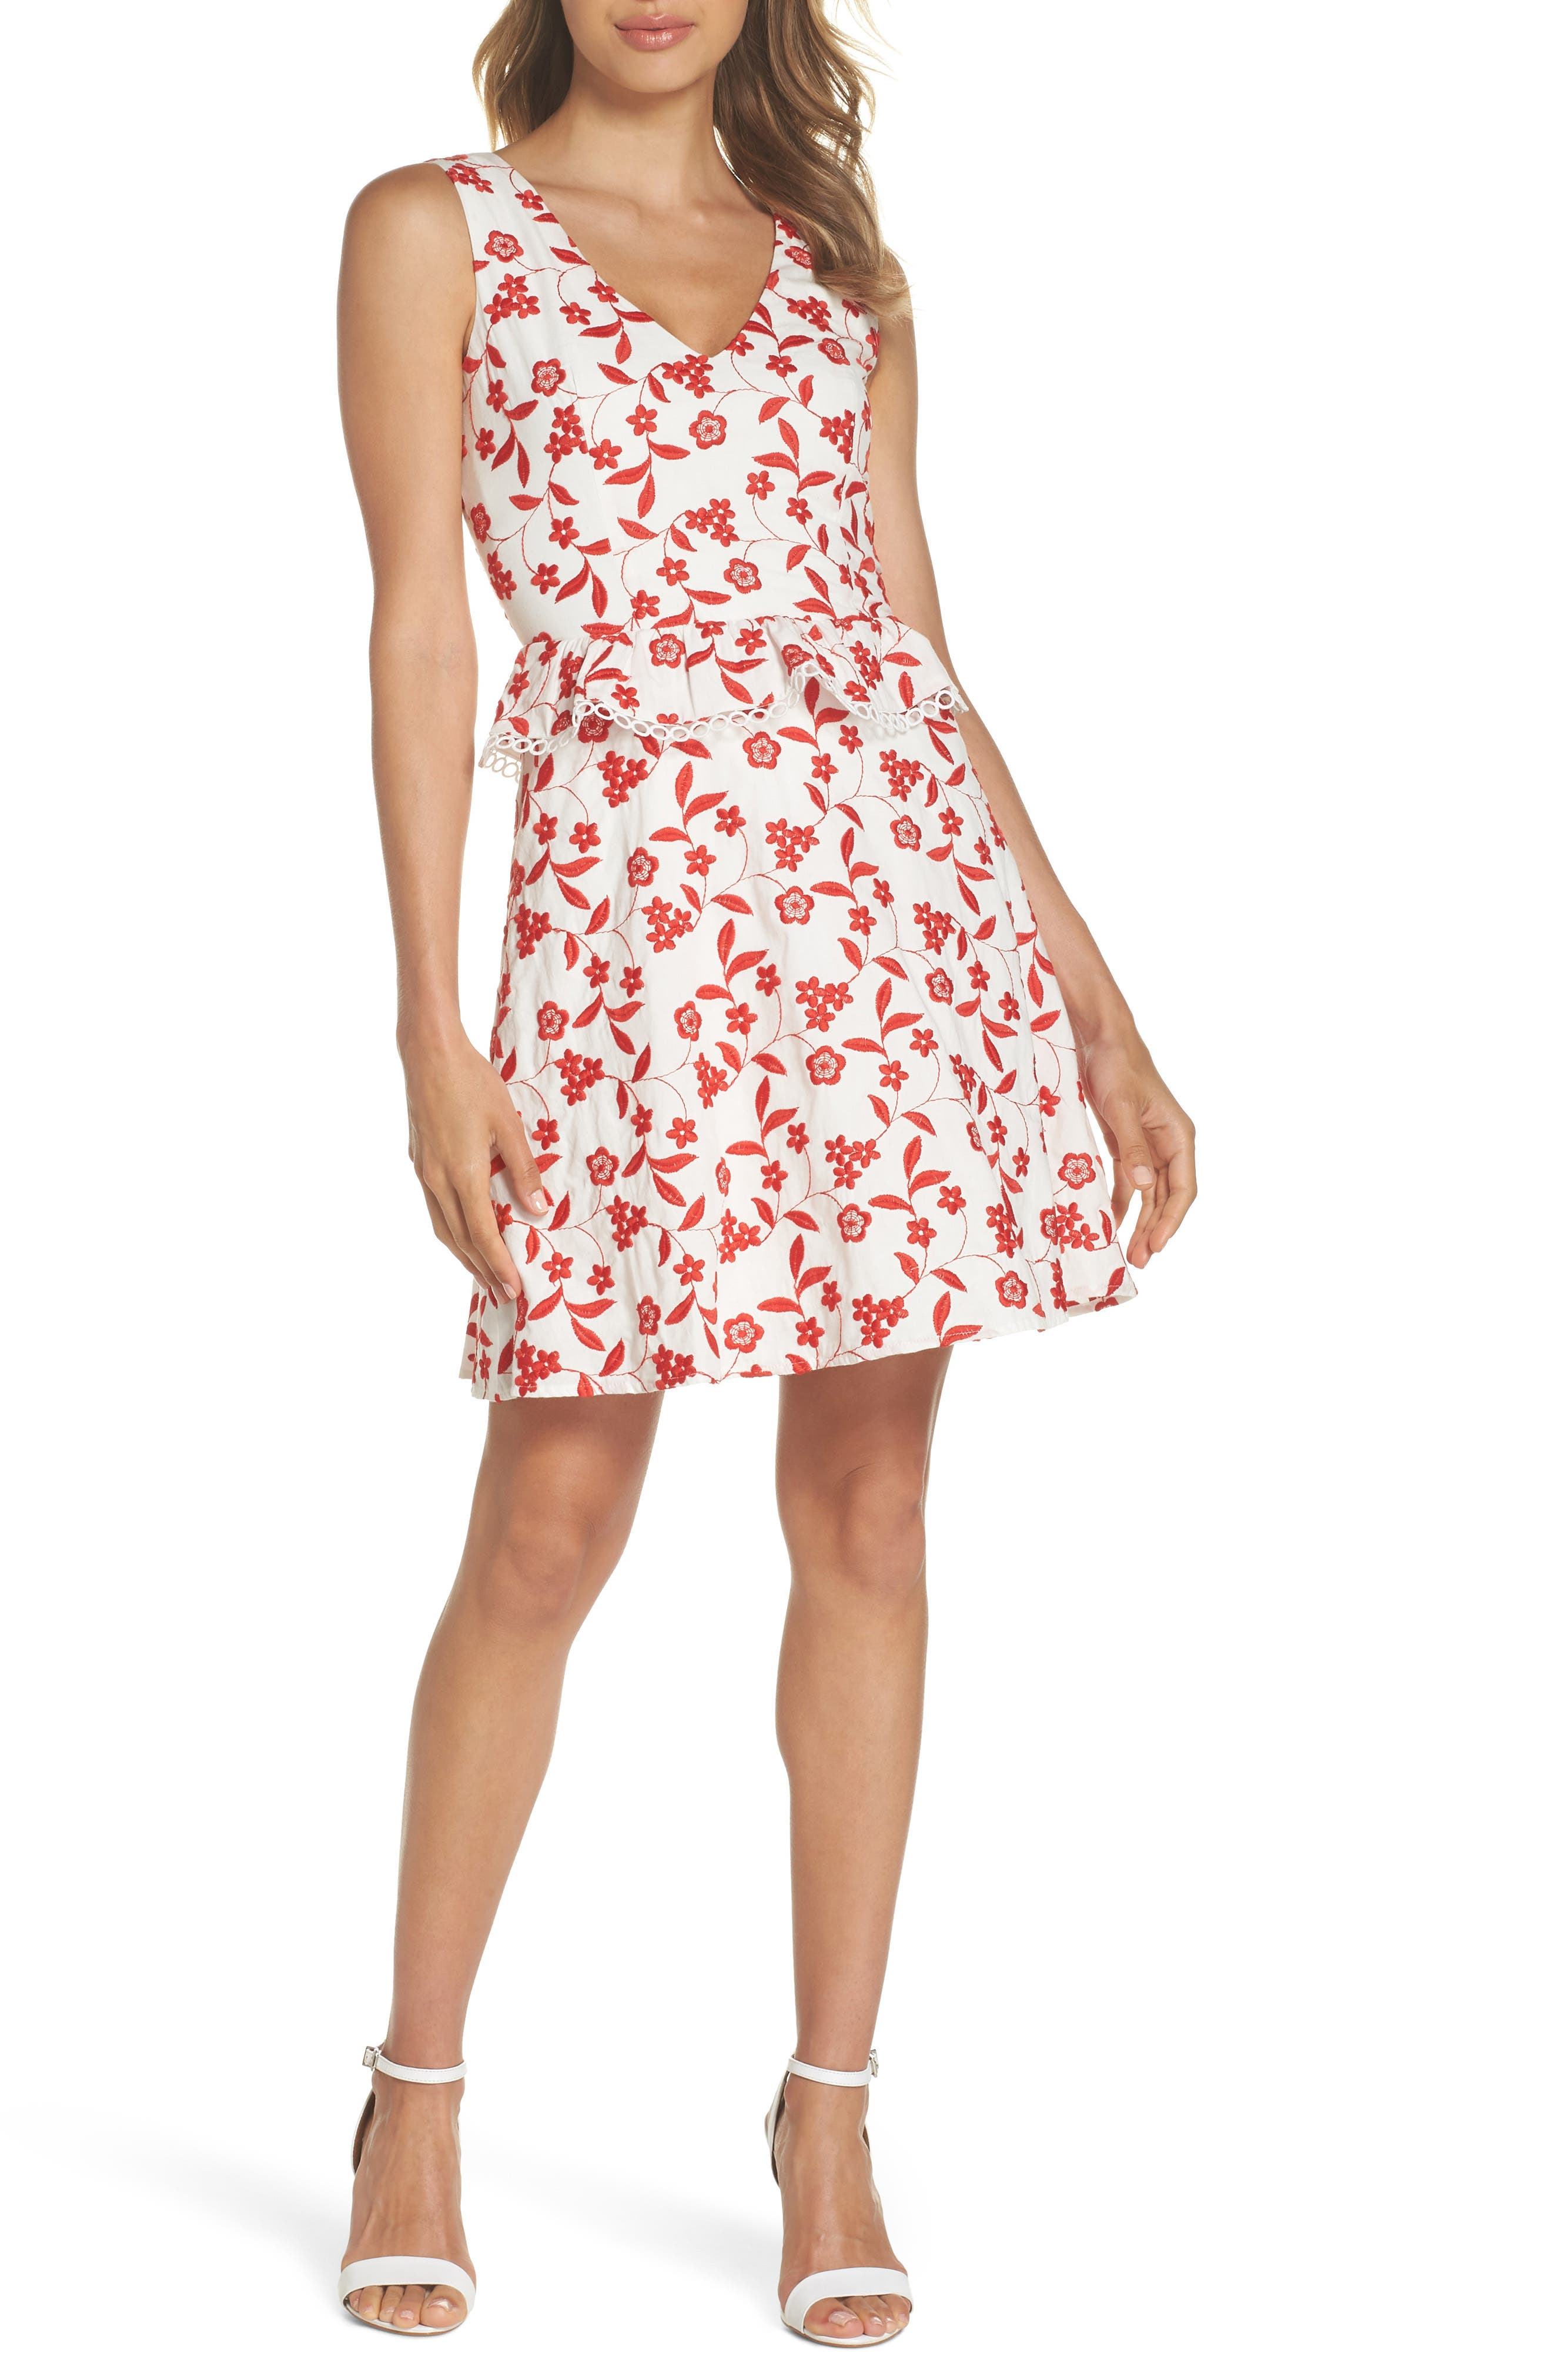 Aubrey Embroidered Cotton Dress,                             Main thumbnail 1, color,                             600